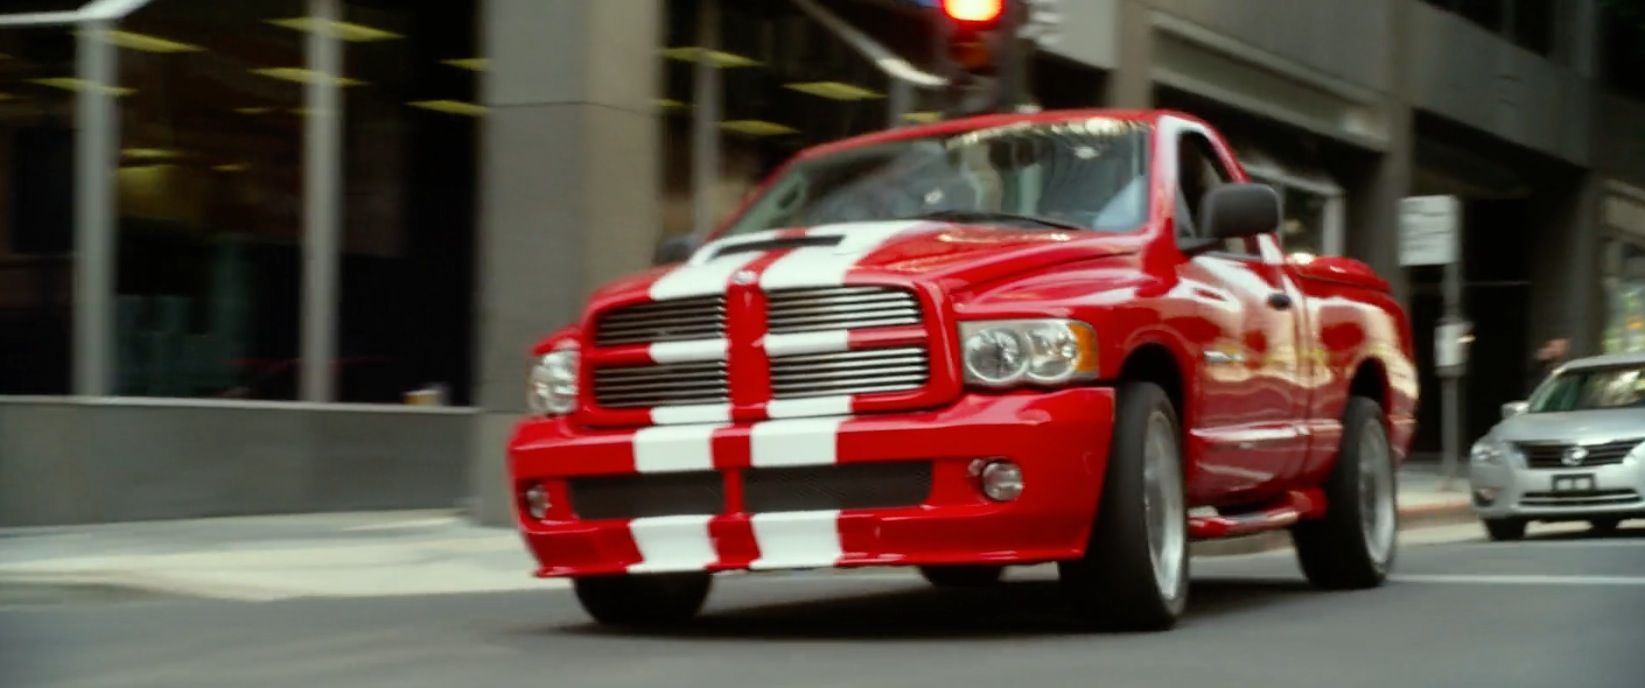 Dodge Ram Srt 10 2004 Driven By Ice Cube In Ride Along 2013 Dodgeofficial Voiture